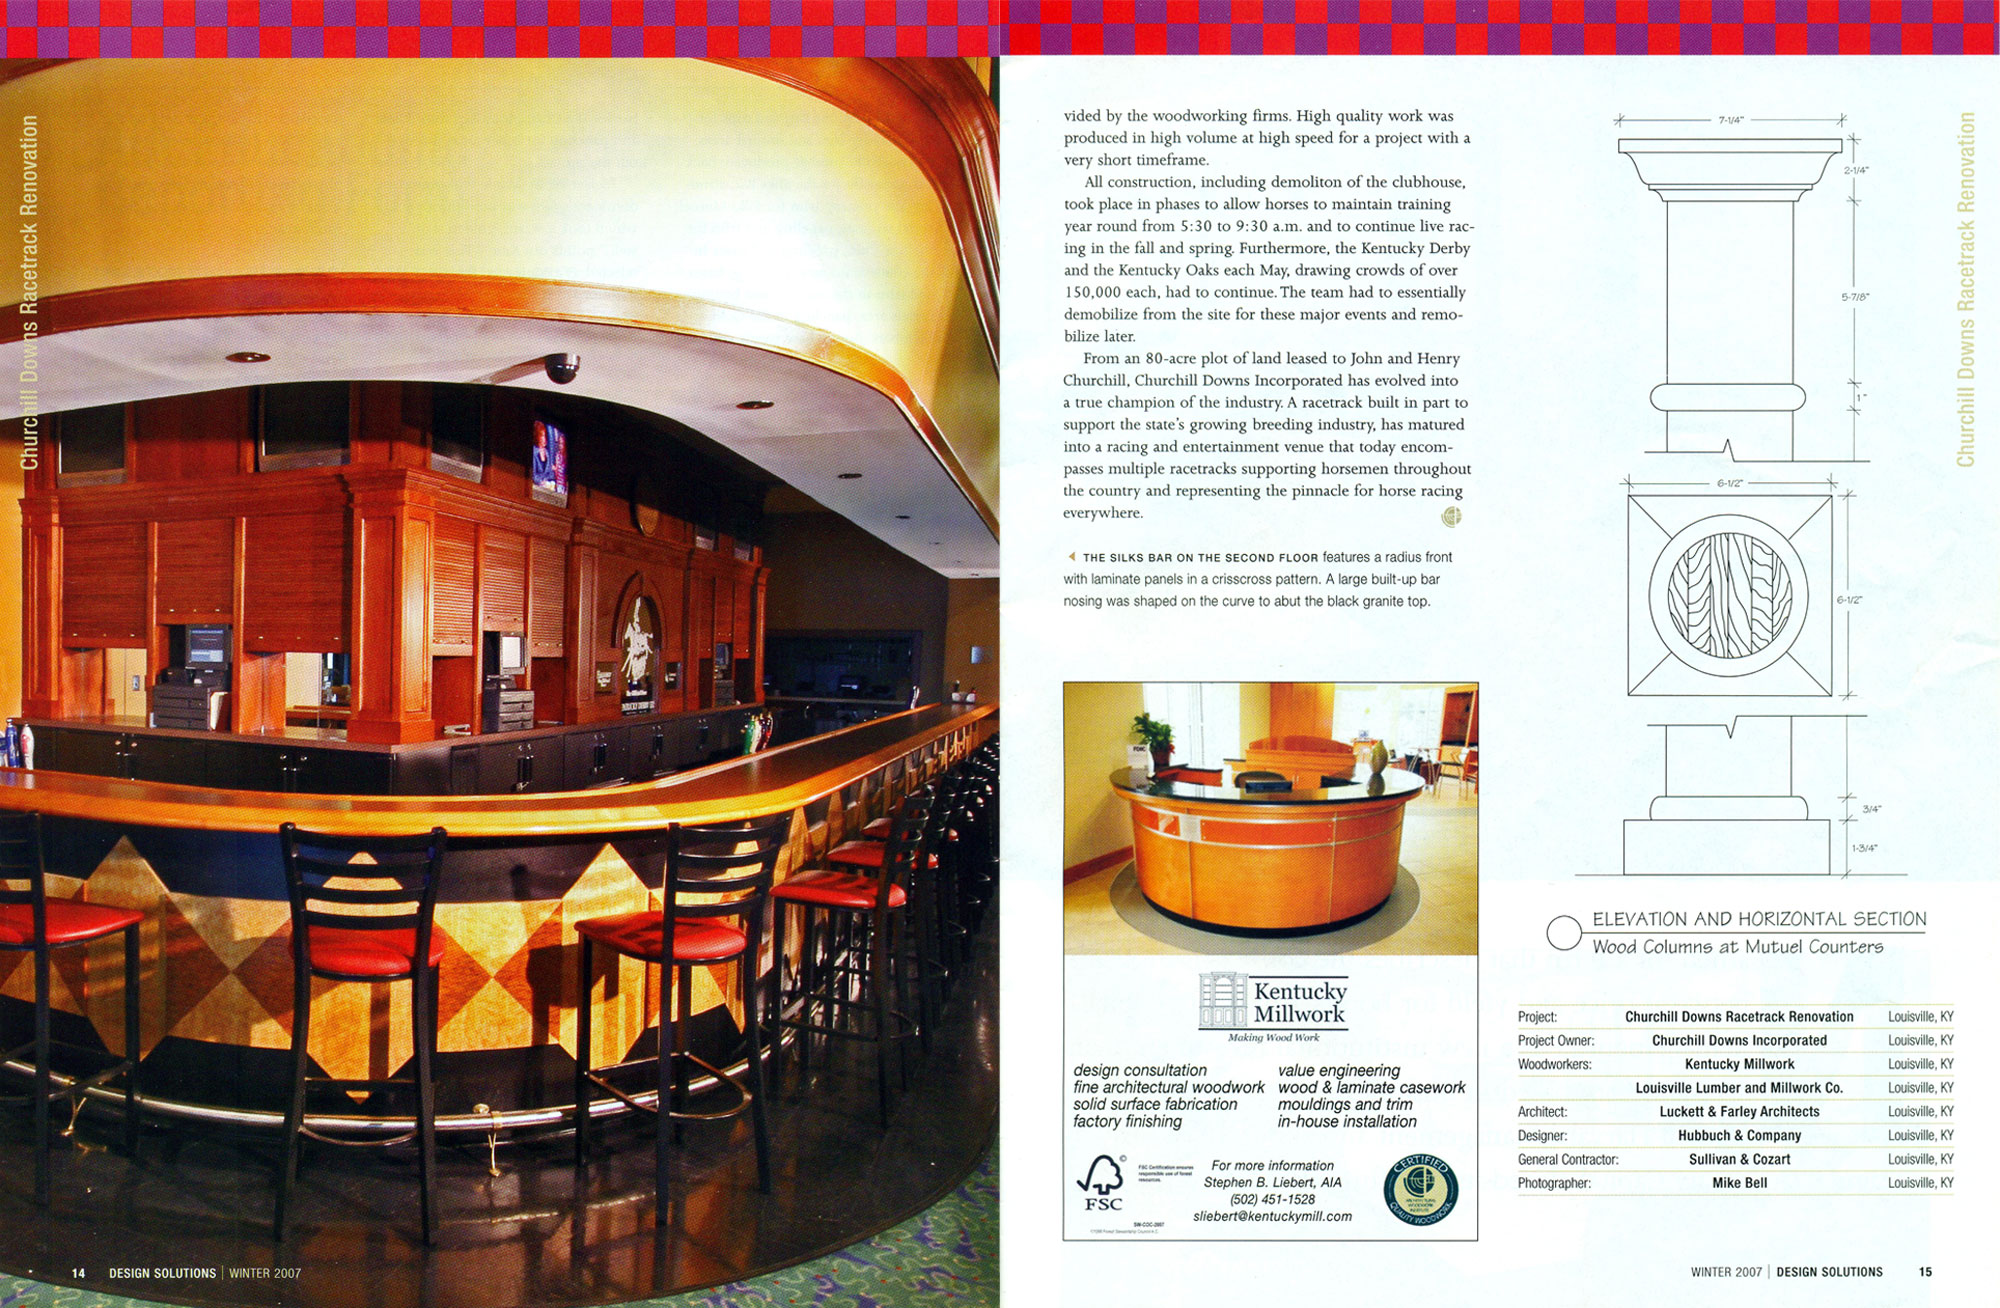 Pictures of wainscoting used in the Churchill Downs magazine